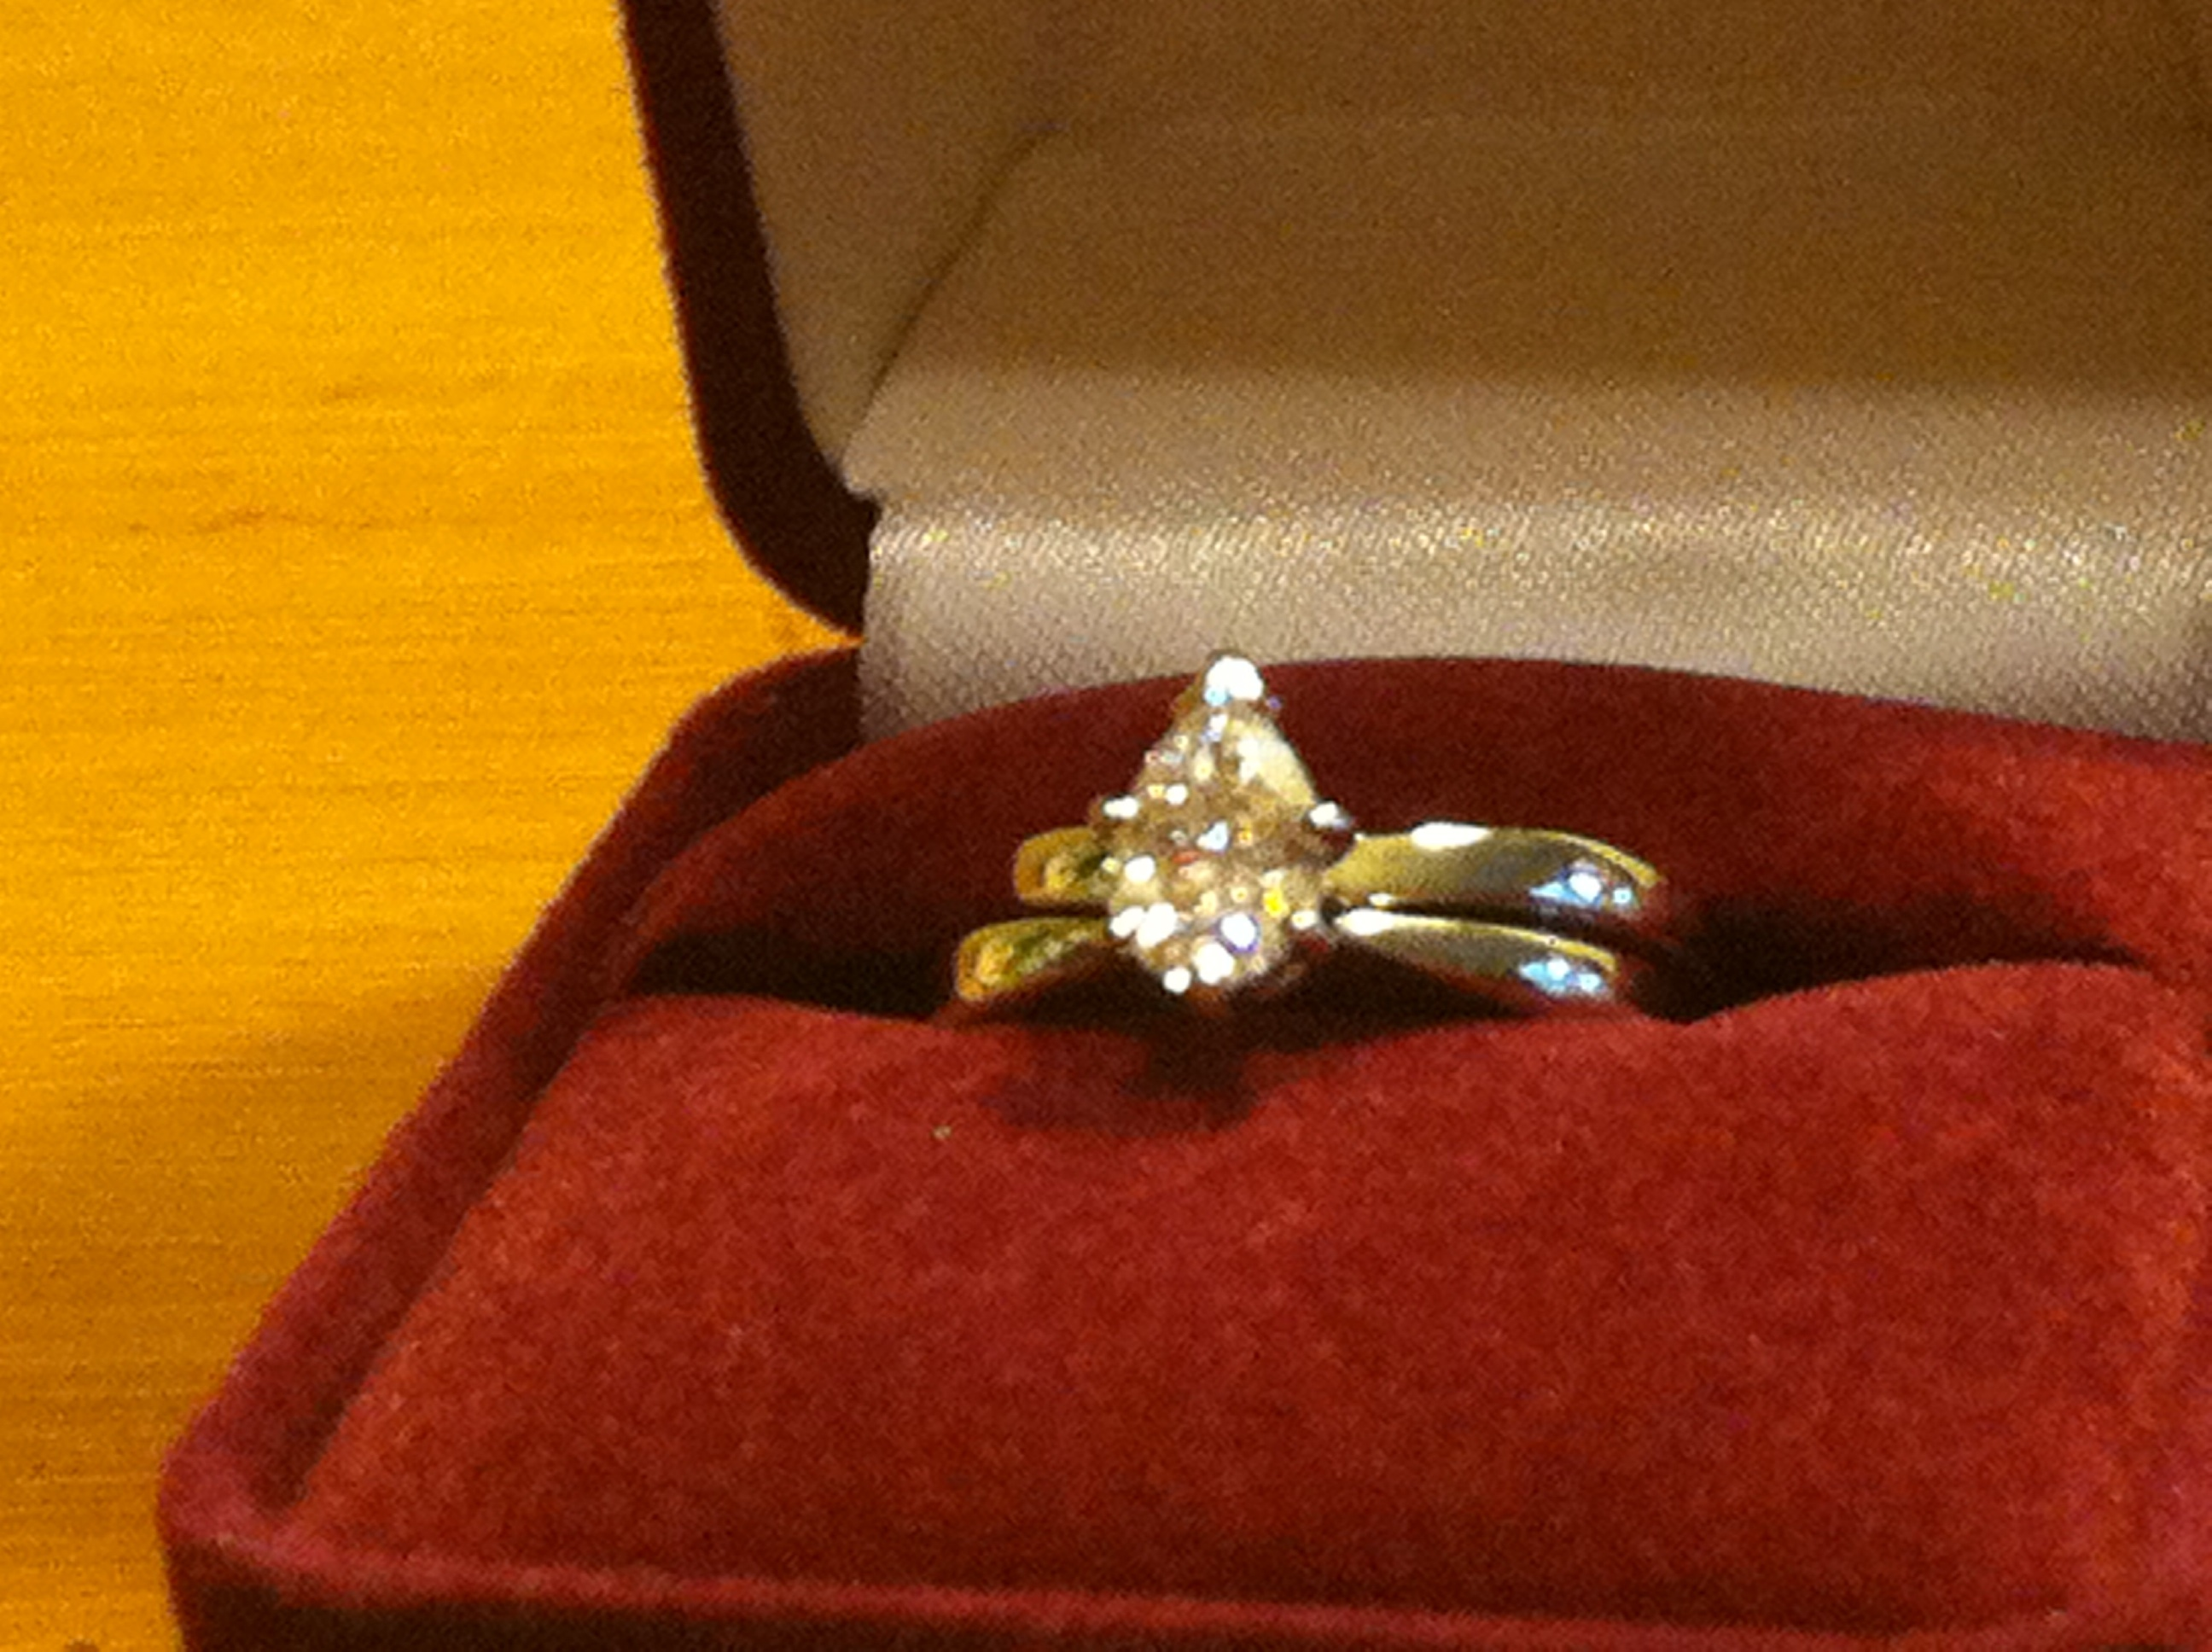 Approx 1 Carat Pear Shaped Diamond Engagement Ring And Wedding Band